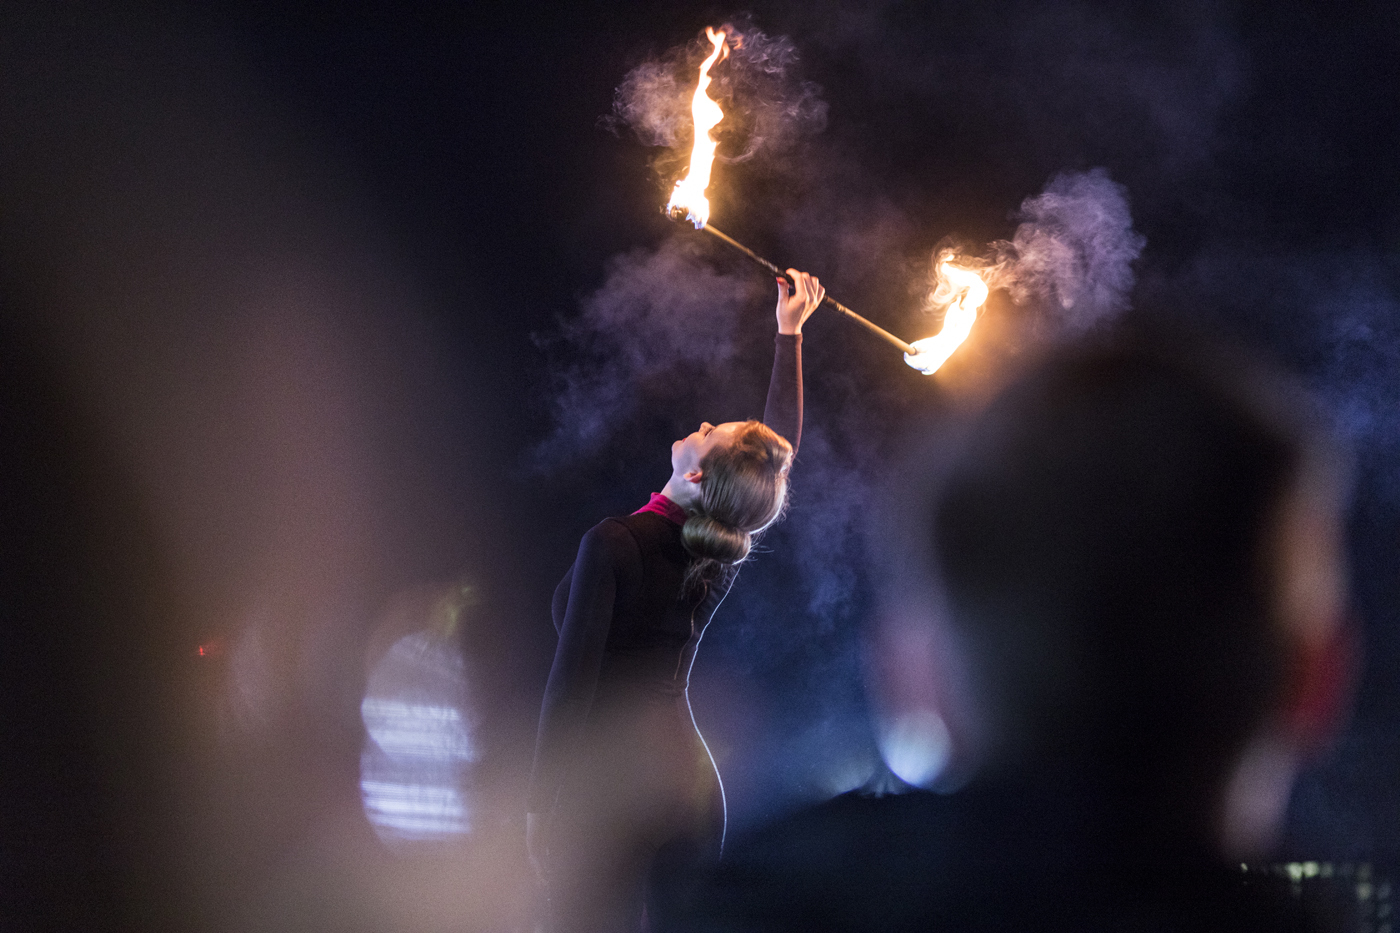 Dancer holding stick with flames at either end